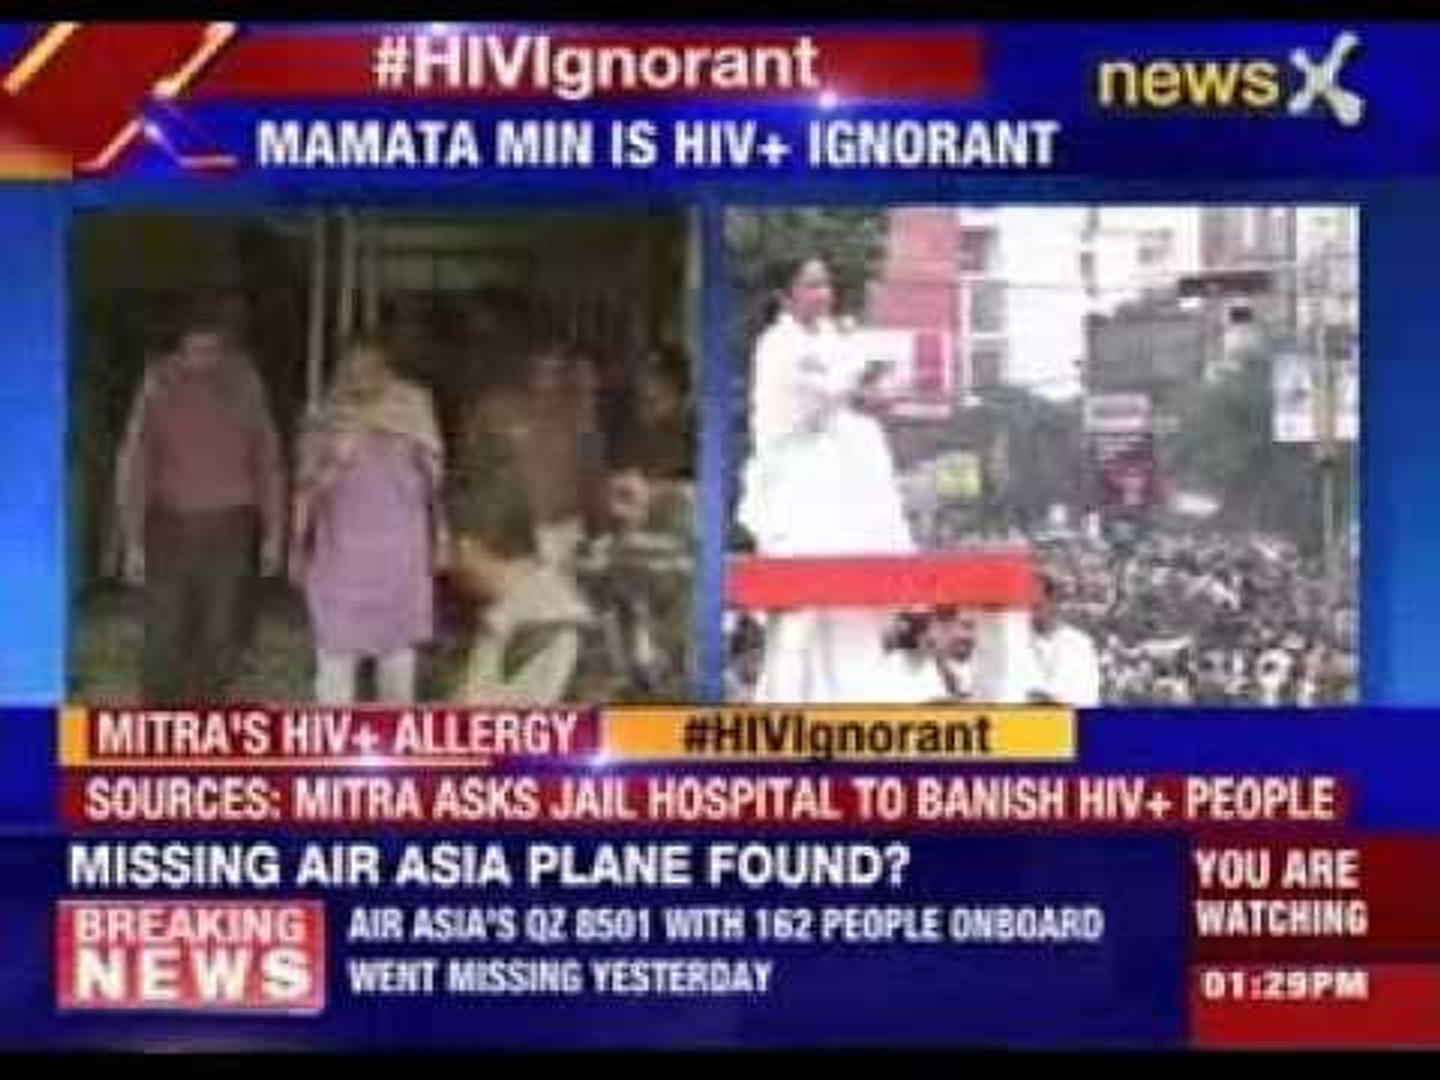 Madan Mitra asks jail hospital to banish HIV+ people